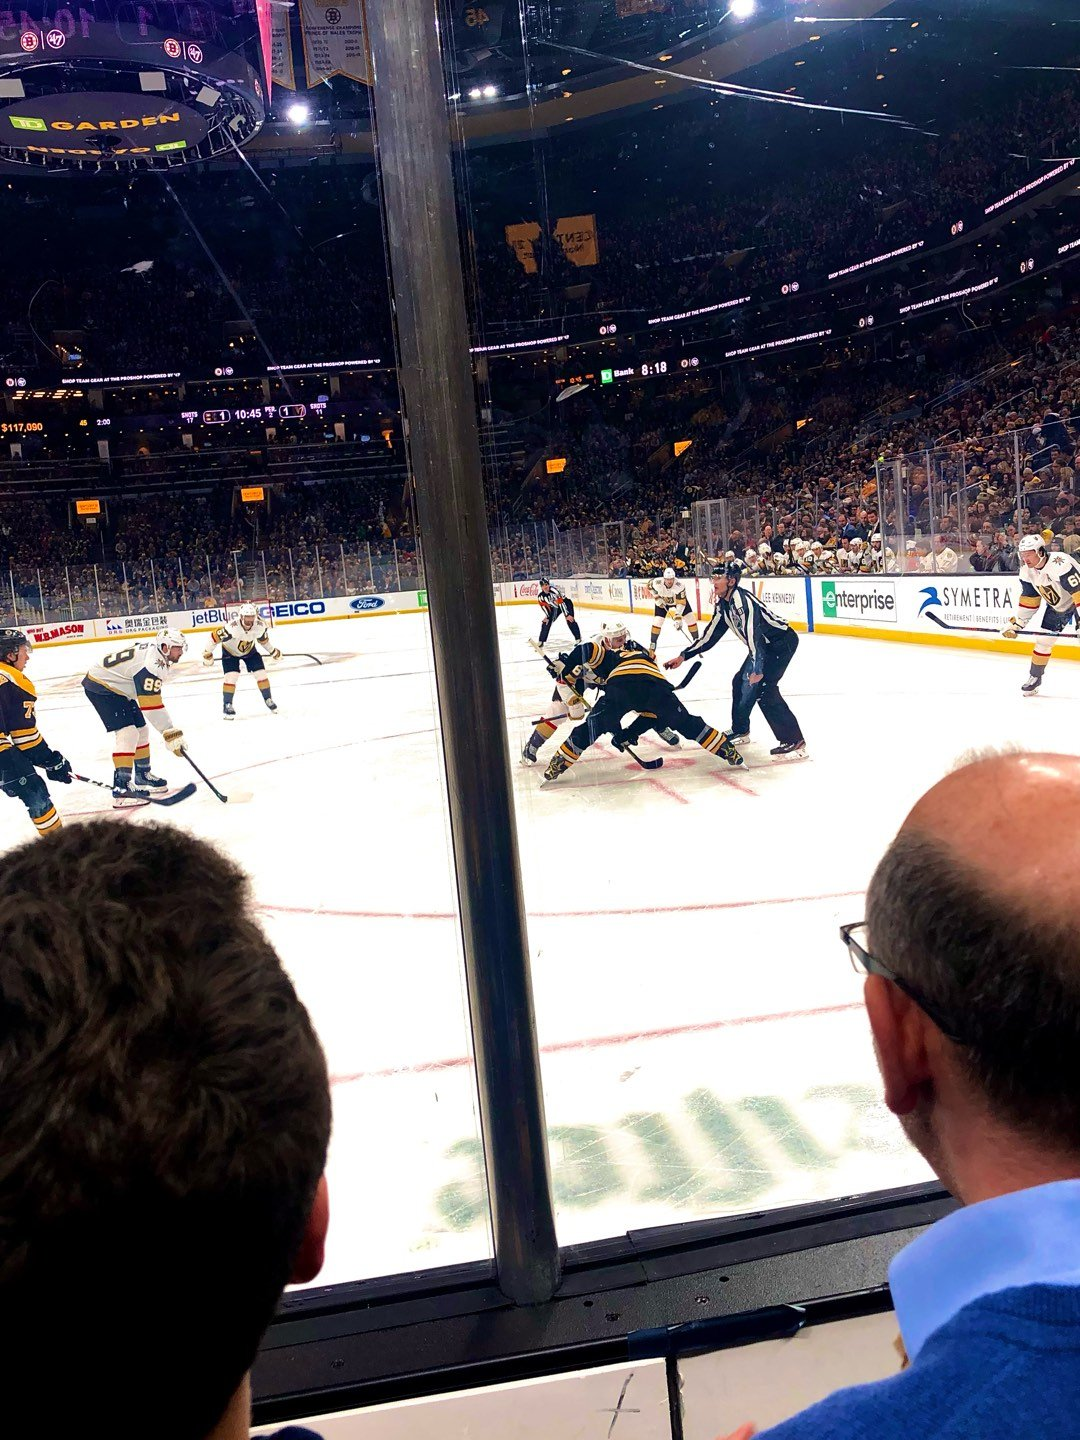 TD Garden Section LOGE 6 Row 2 Seat 10